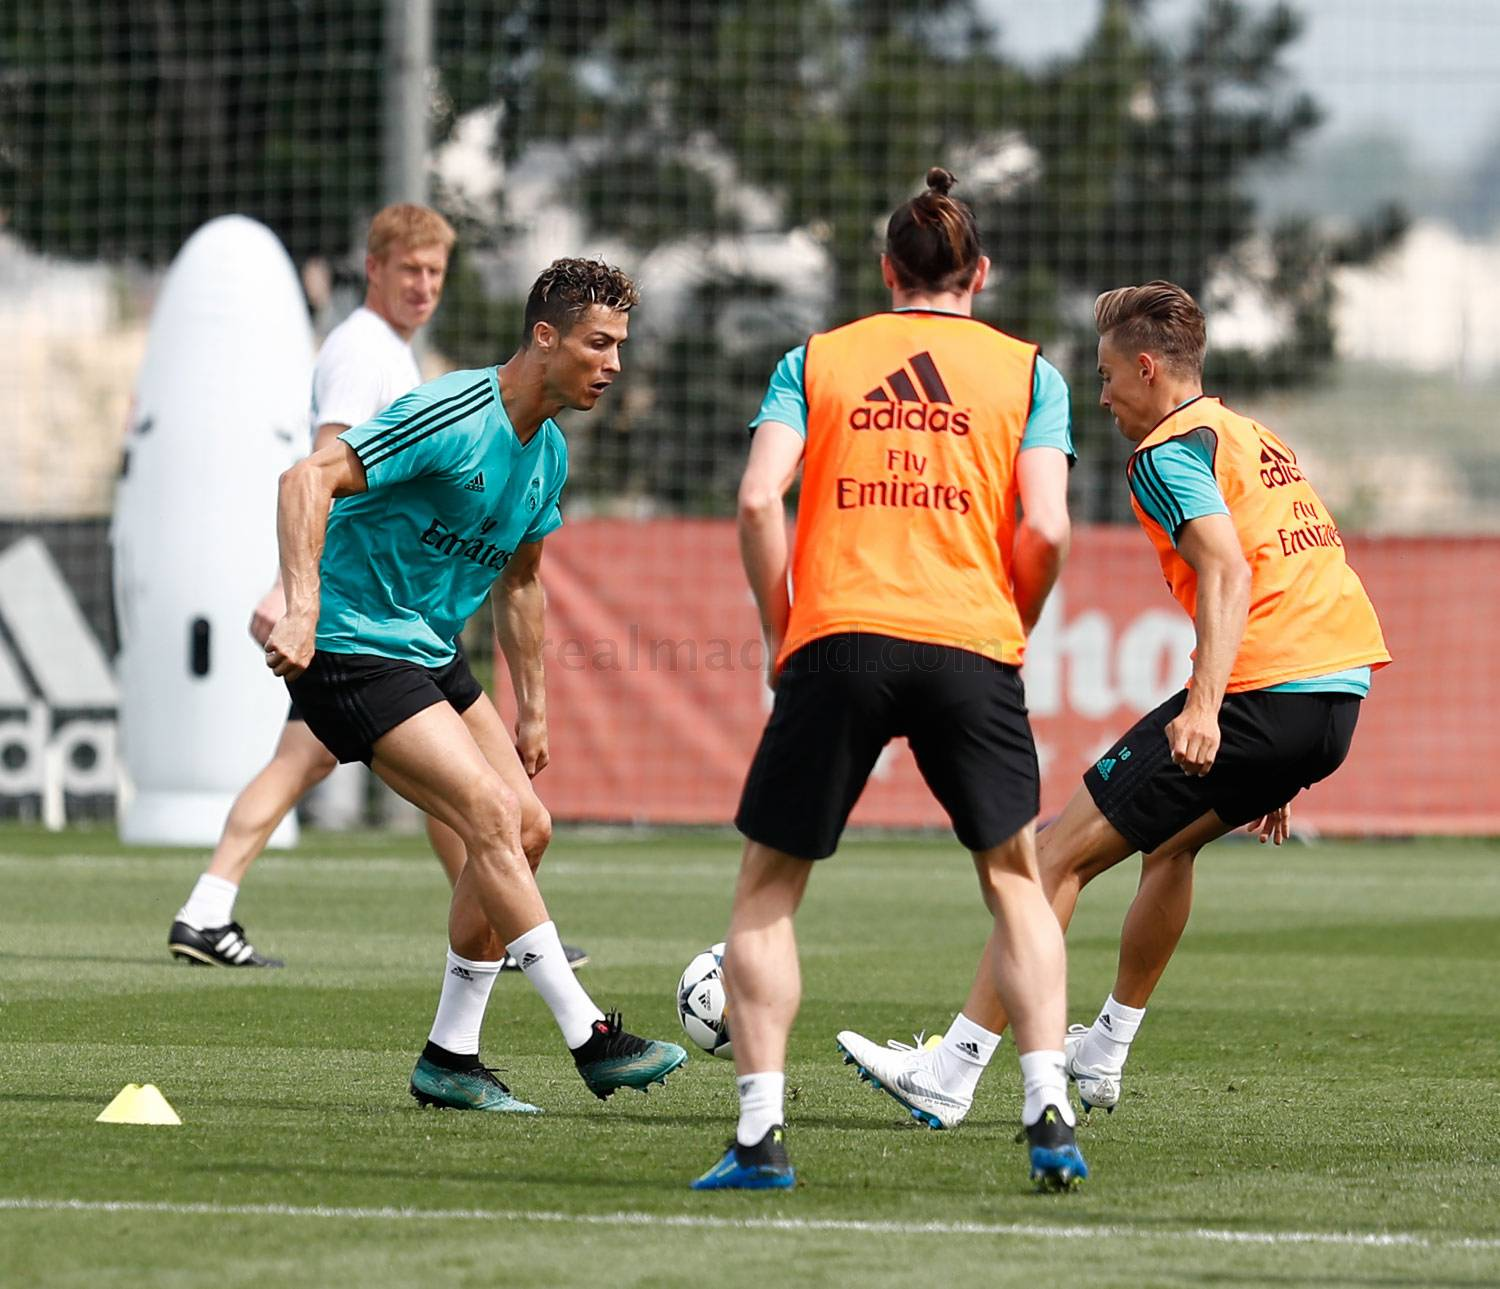 Real Madrid - Entrenamiento del Real Madrid - 23-05-2018